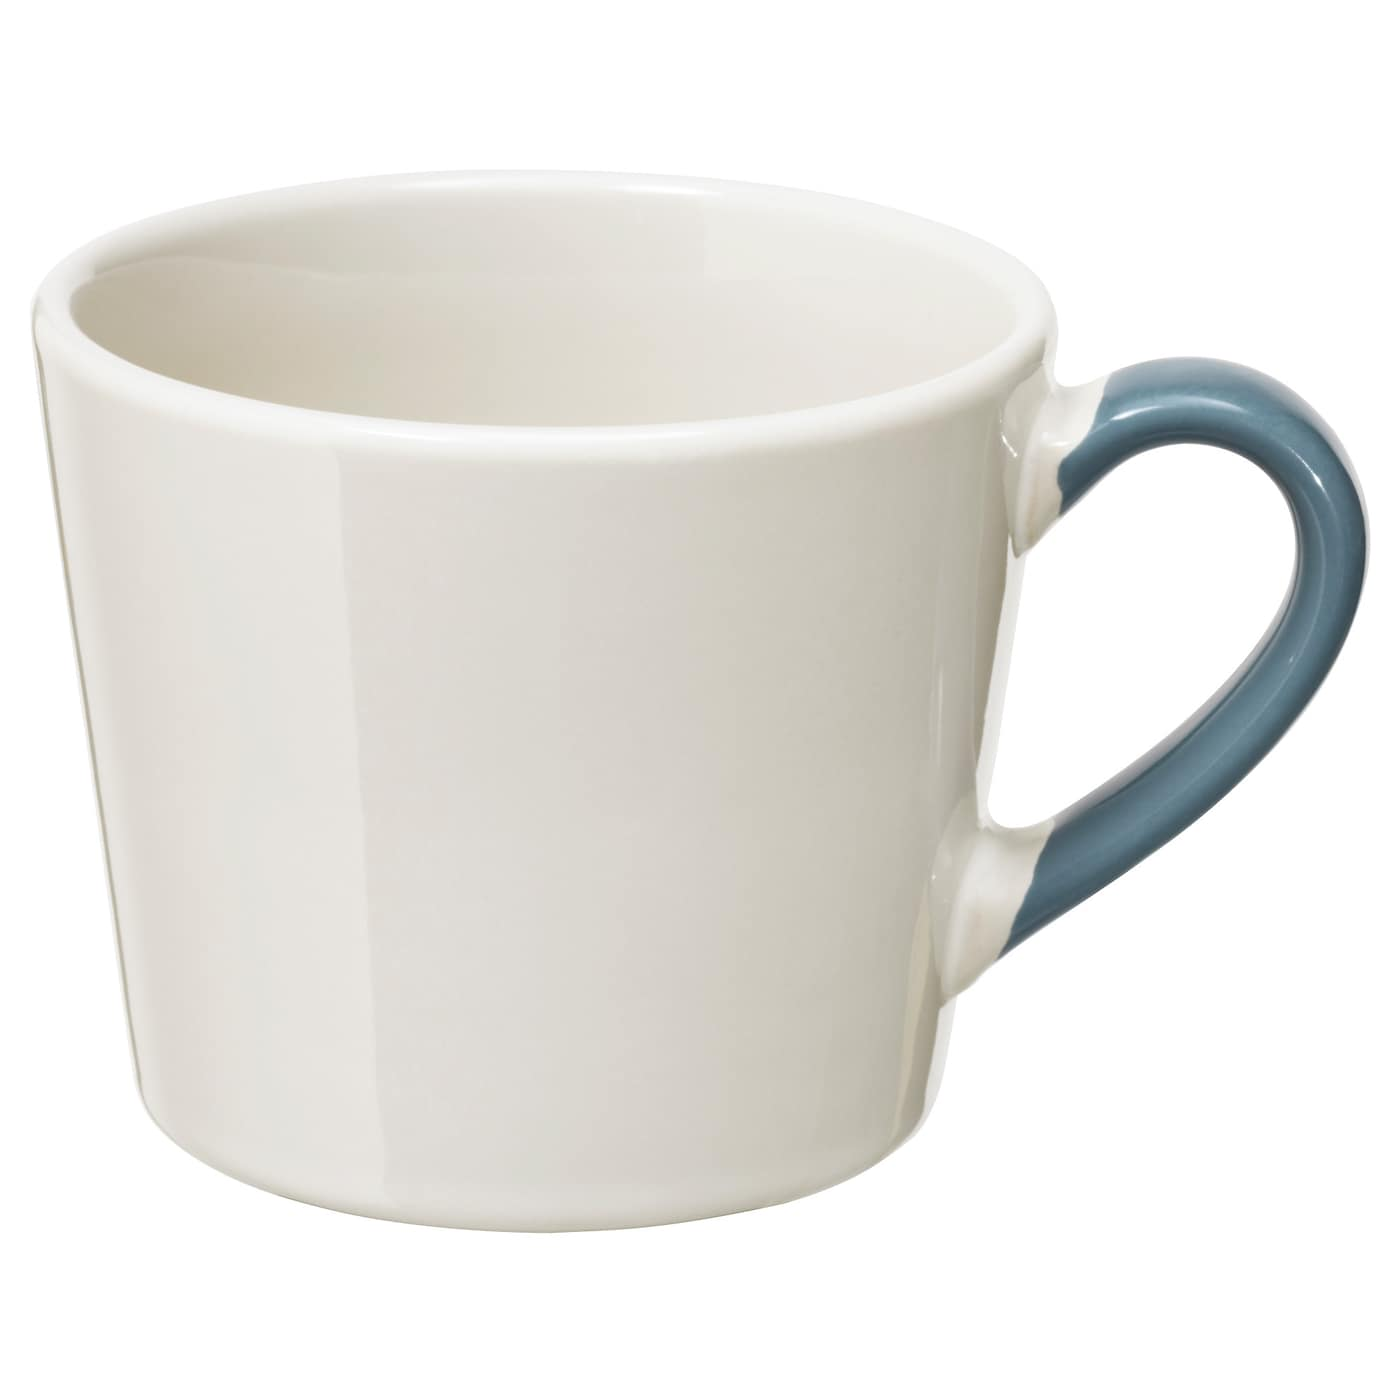 Finstilt Mug Off White Blue 36 Cl Ikea